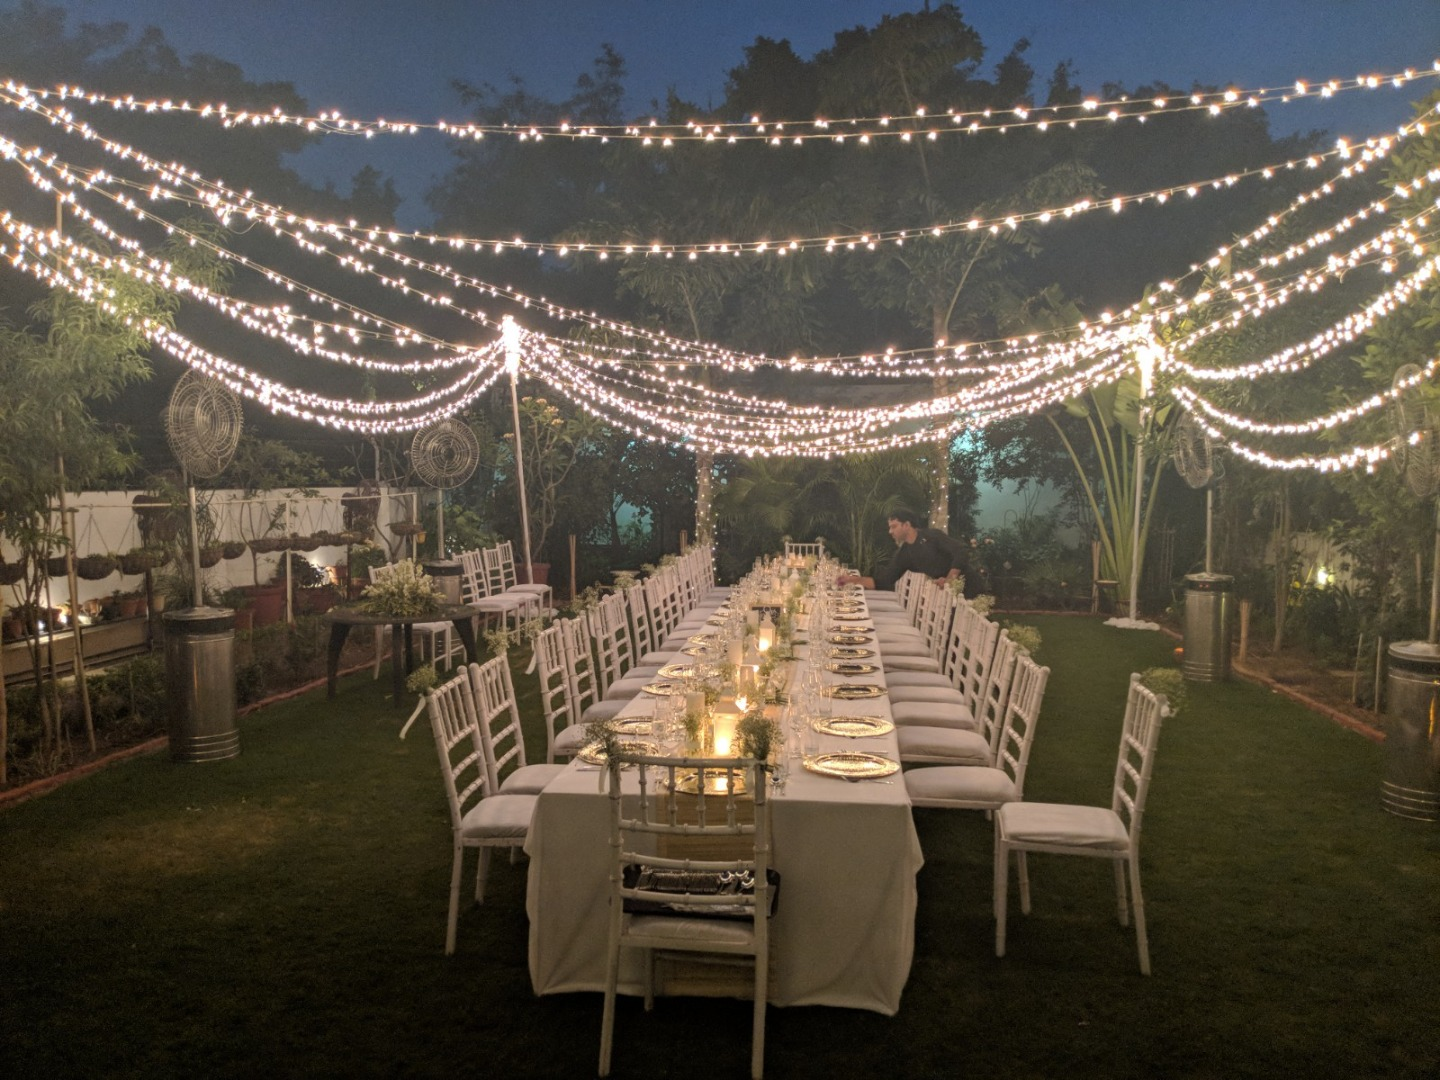 Magical Fairy Lights Decor in Indian Wedding